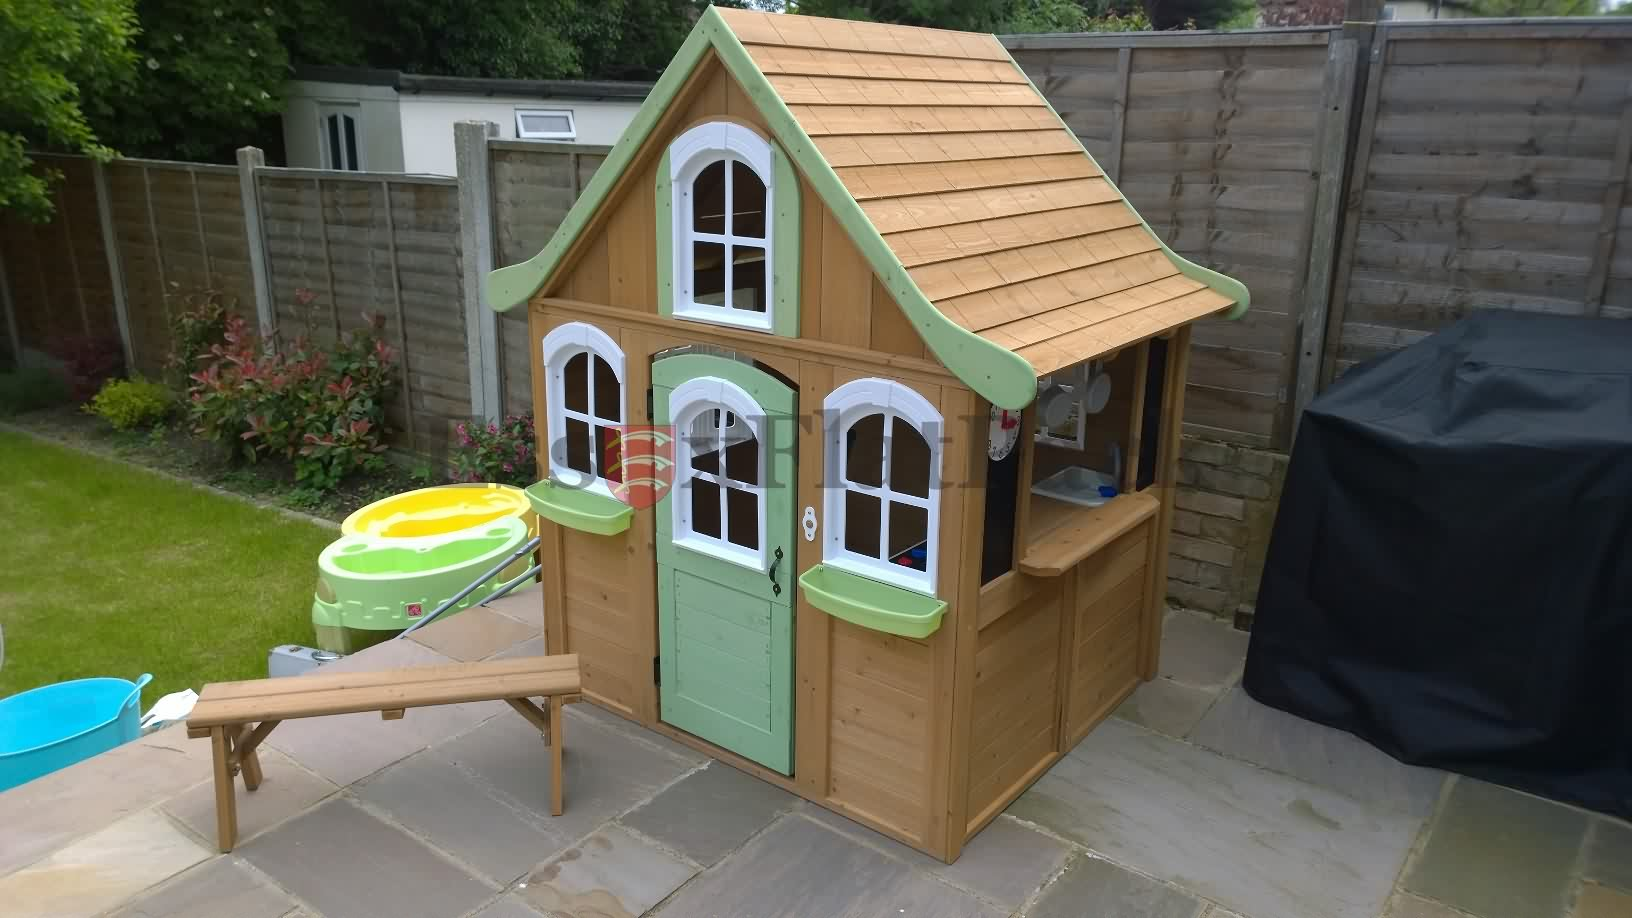 essexflatpack-playhouse-20160527122937.jpg